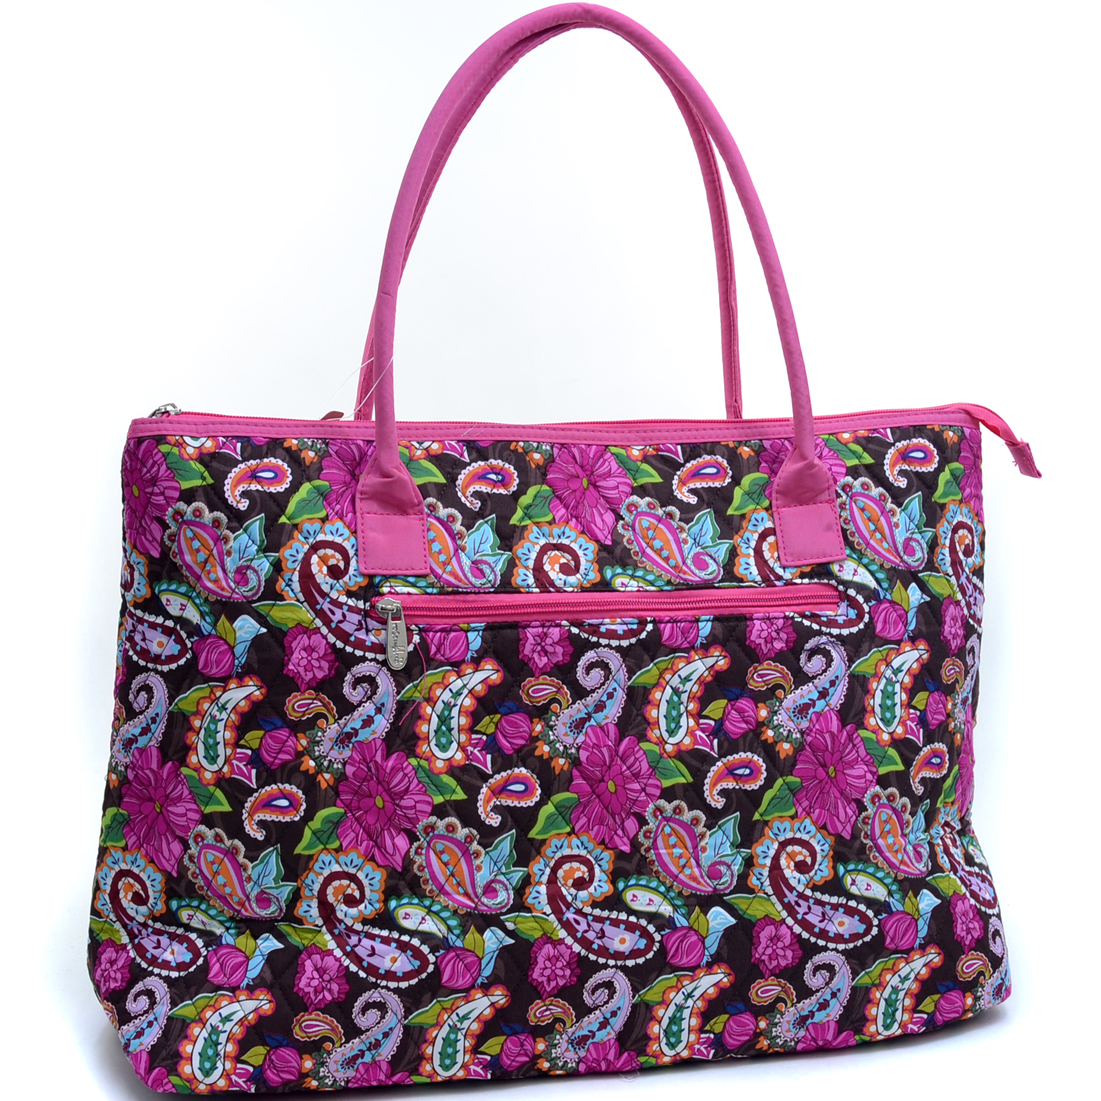 Rosen Blue® Oversized Quilted Tote Bag with Optional Bow Decor in Paisley Print